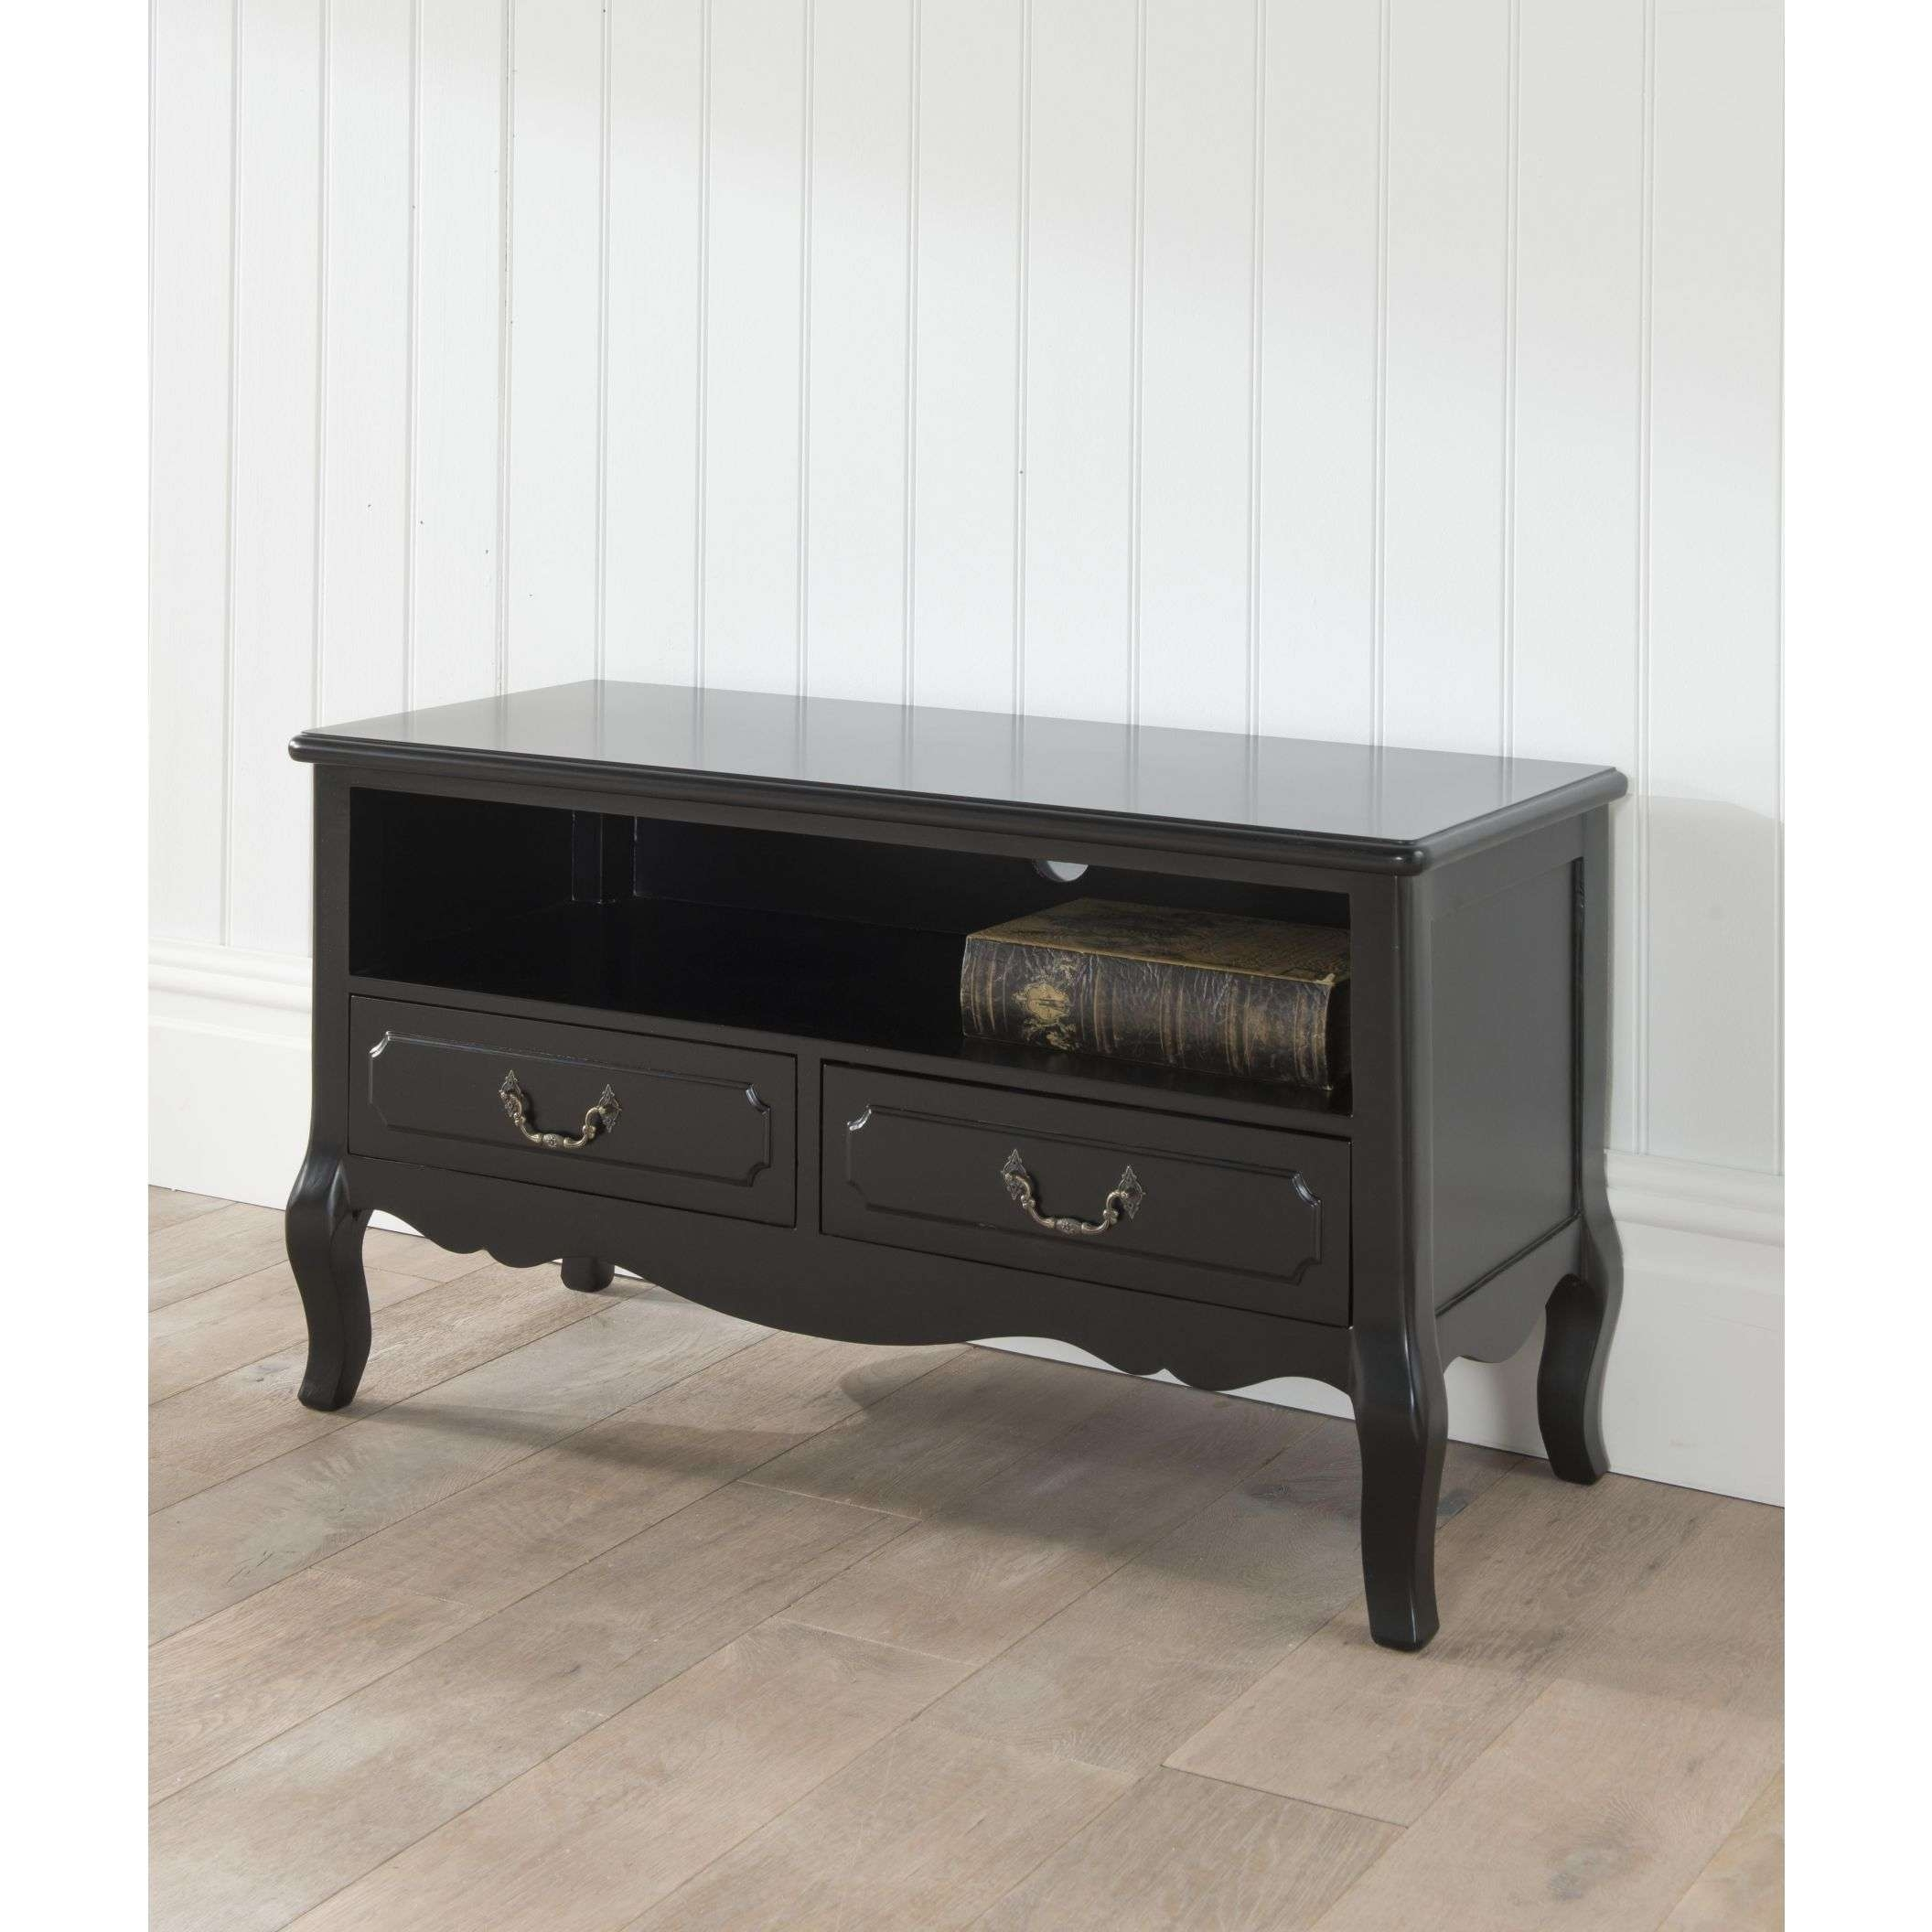 Antique French Tv Stand | Black French Style Furniture In French Style Tv Cabinets (View 3 of 20)